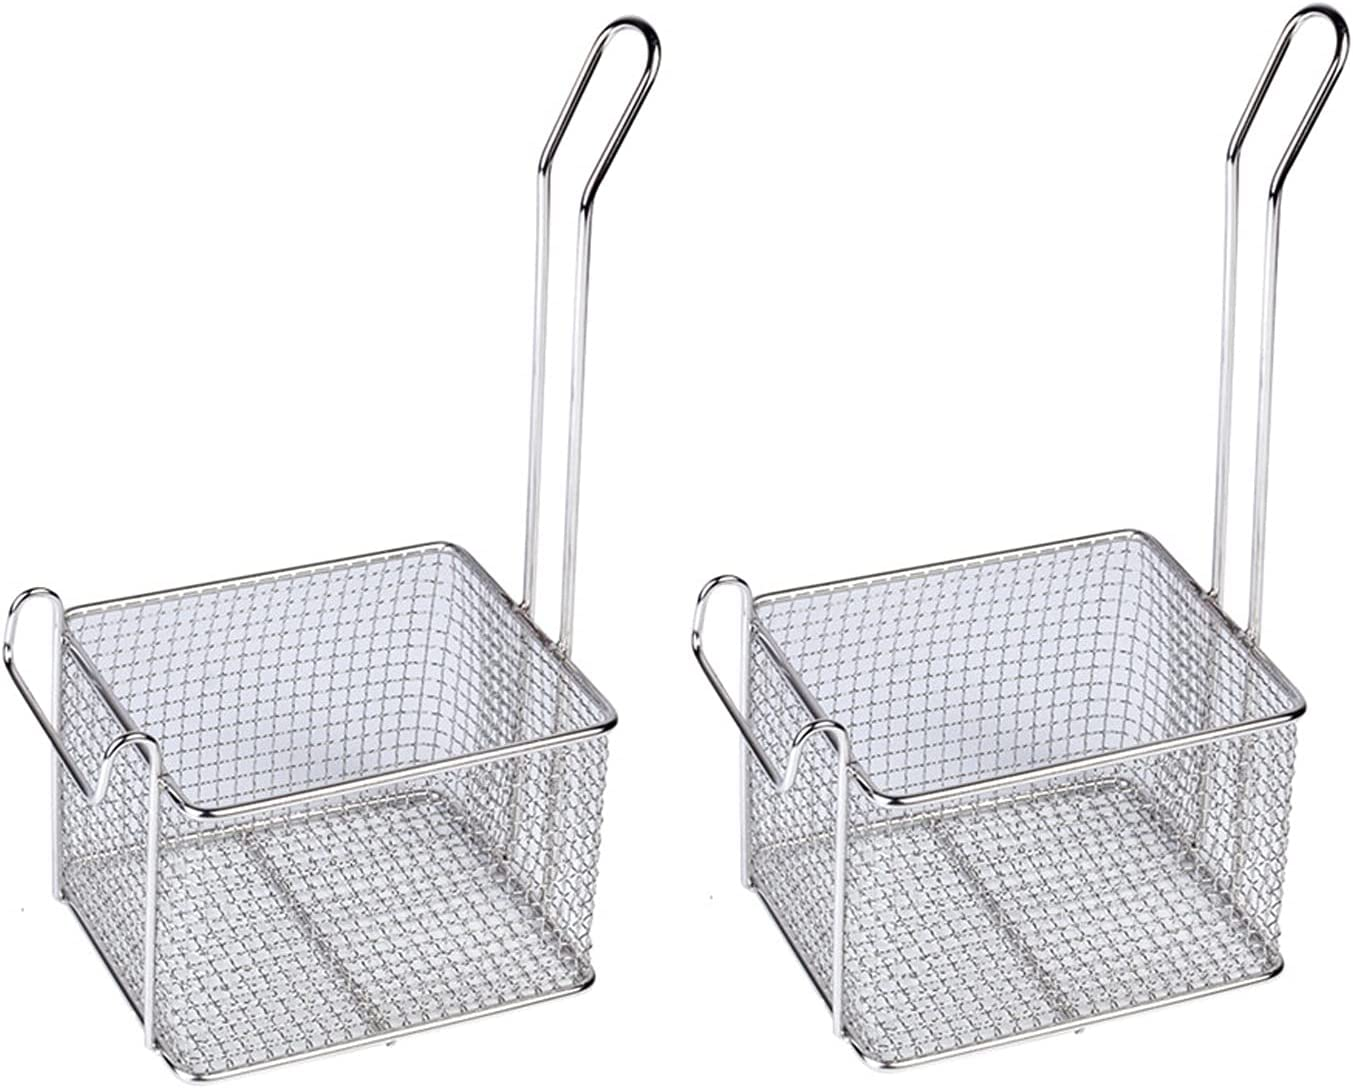 Fried basket It is very popular Stainless Max 50% OFF Steel Large Basket Frying Rectangular Fre